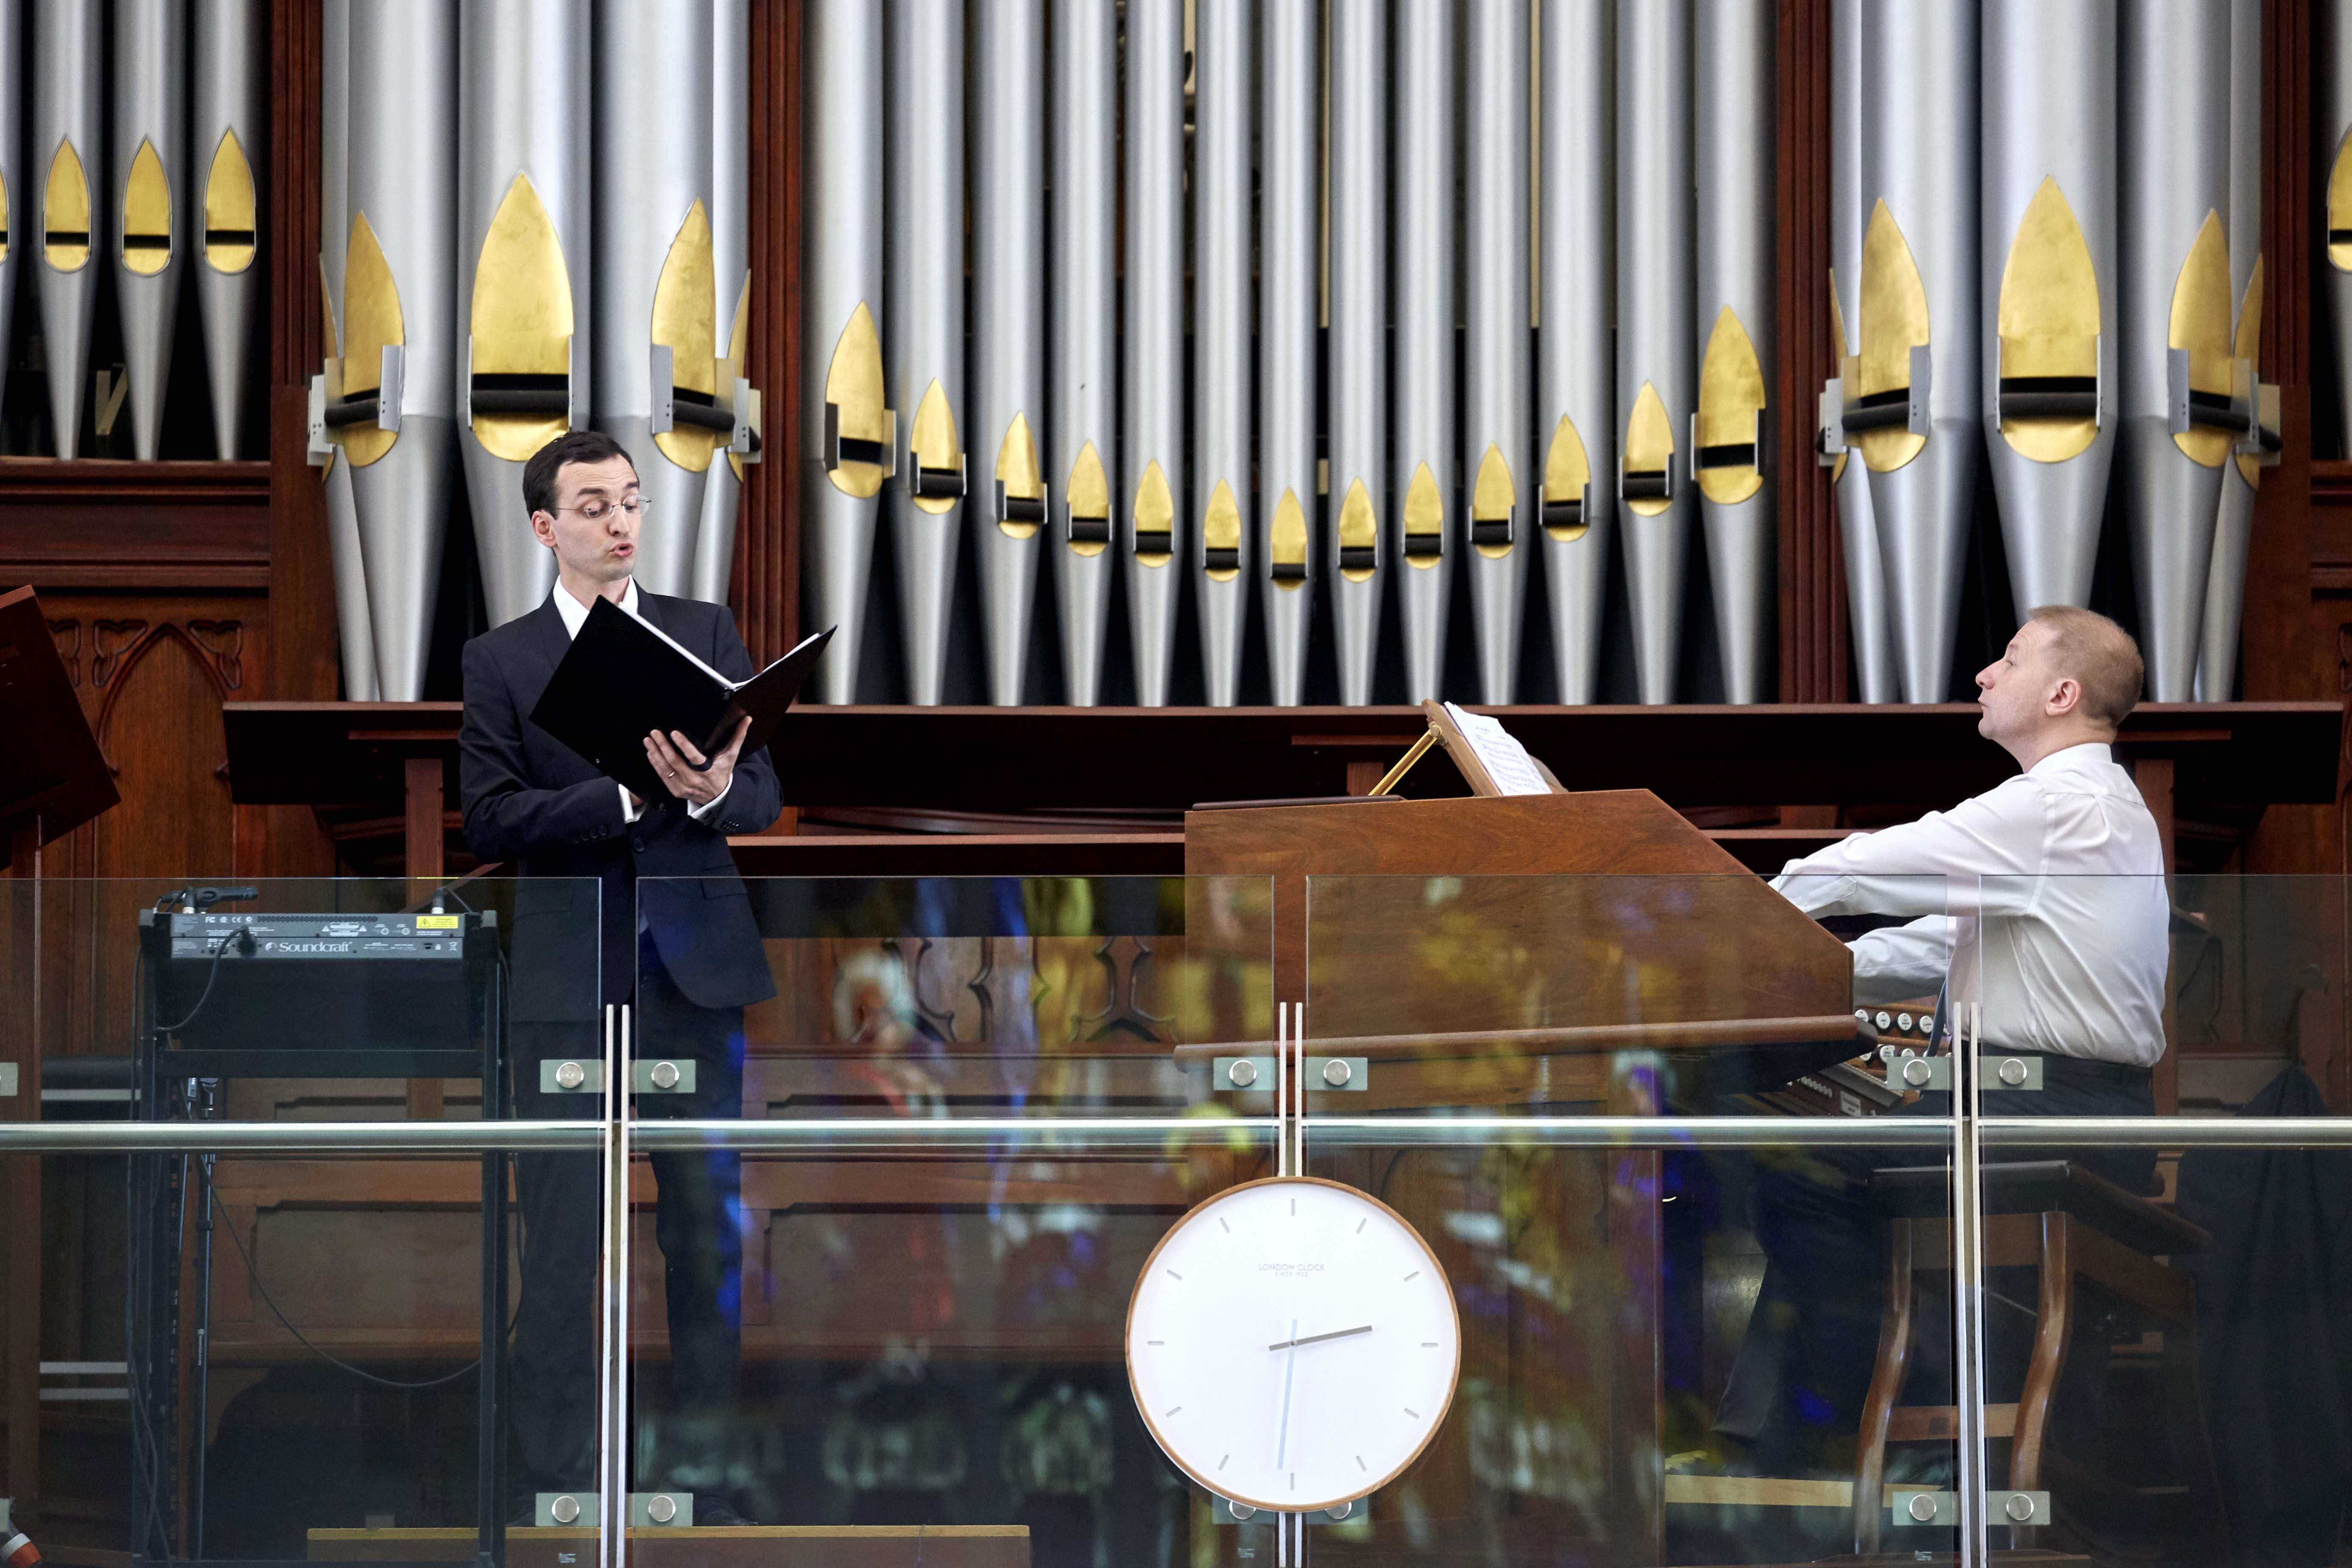 Paris Notre Dame Cathedral musicians, organist Johann Vexo and tenor vocalist Damien Rivieres performed at St Marys Cathedral on 10 February. Photo: Ron Tan.